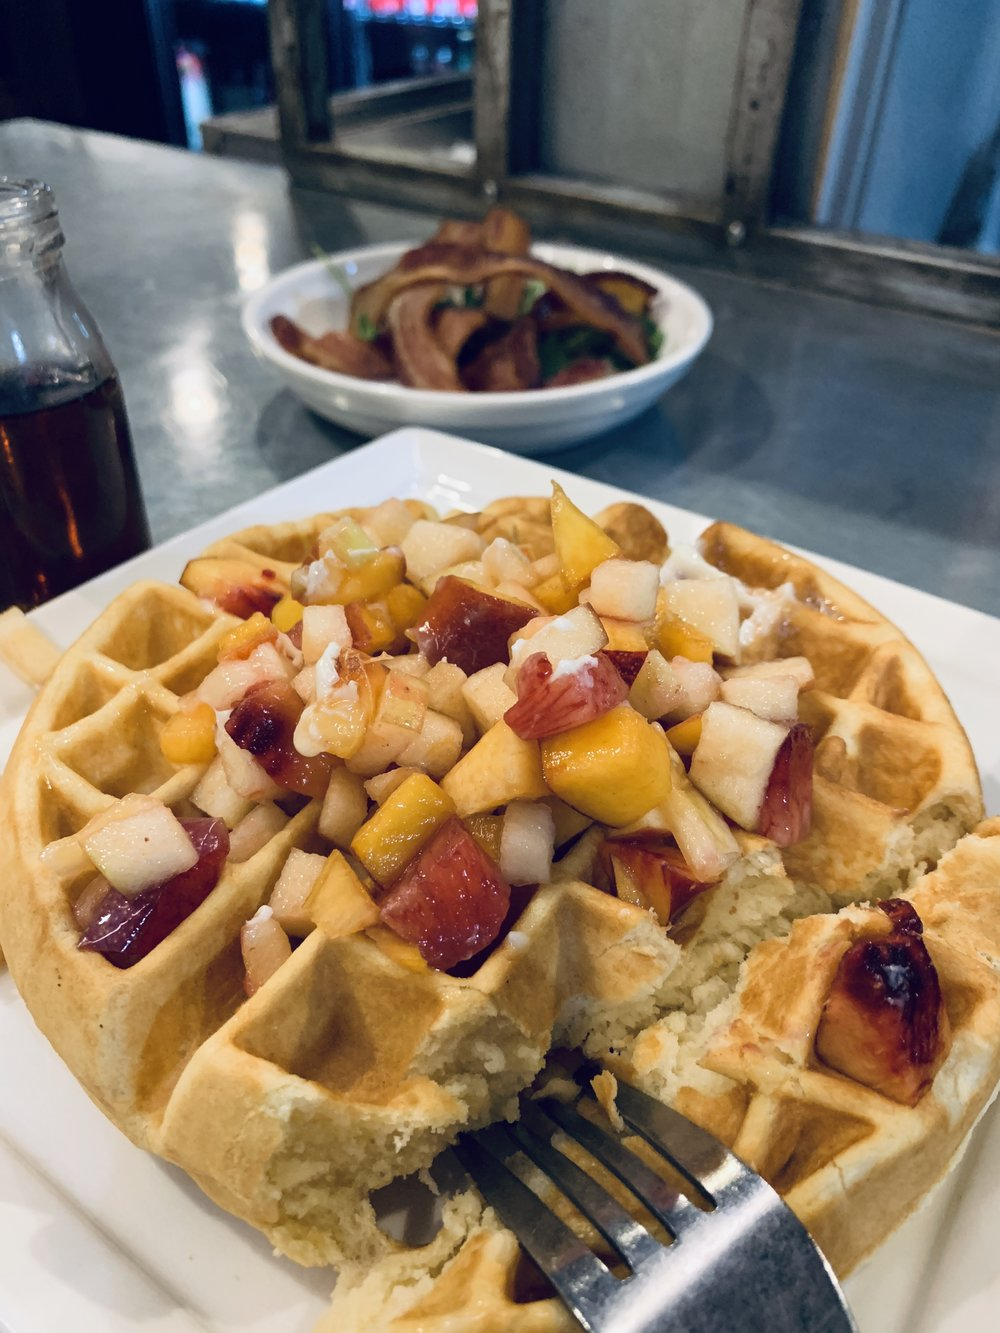 Left:   Waffle - buttermilk batter waffle, diced fruit, whipped butter, warm syrup $11  Side: Bacon $6.00  Drink: Orange Juice